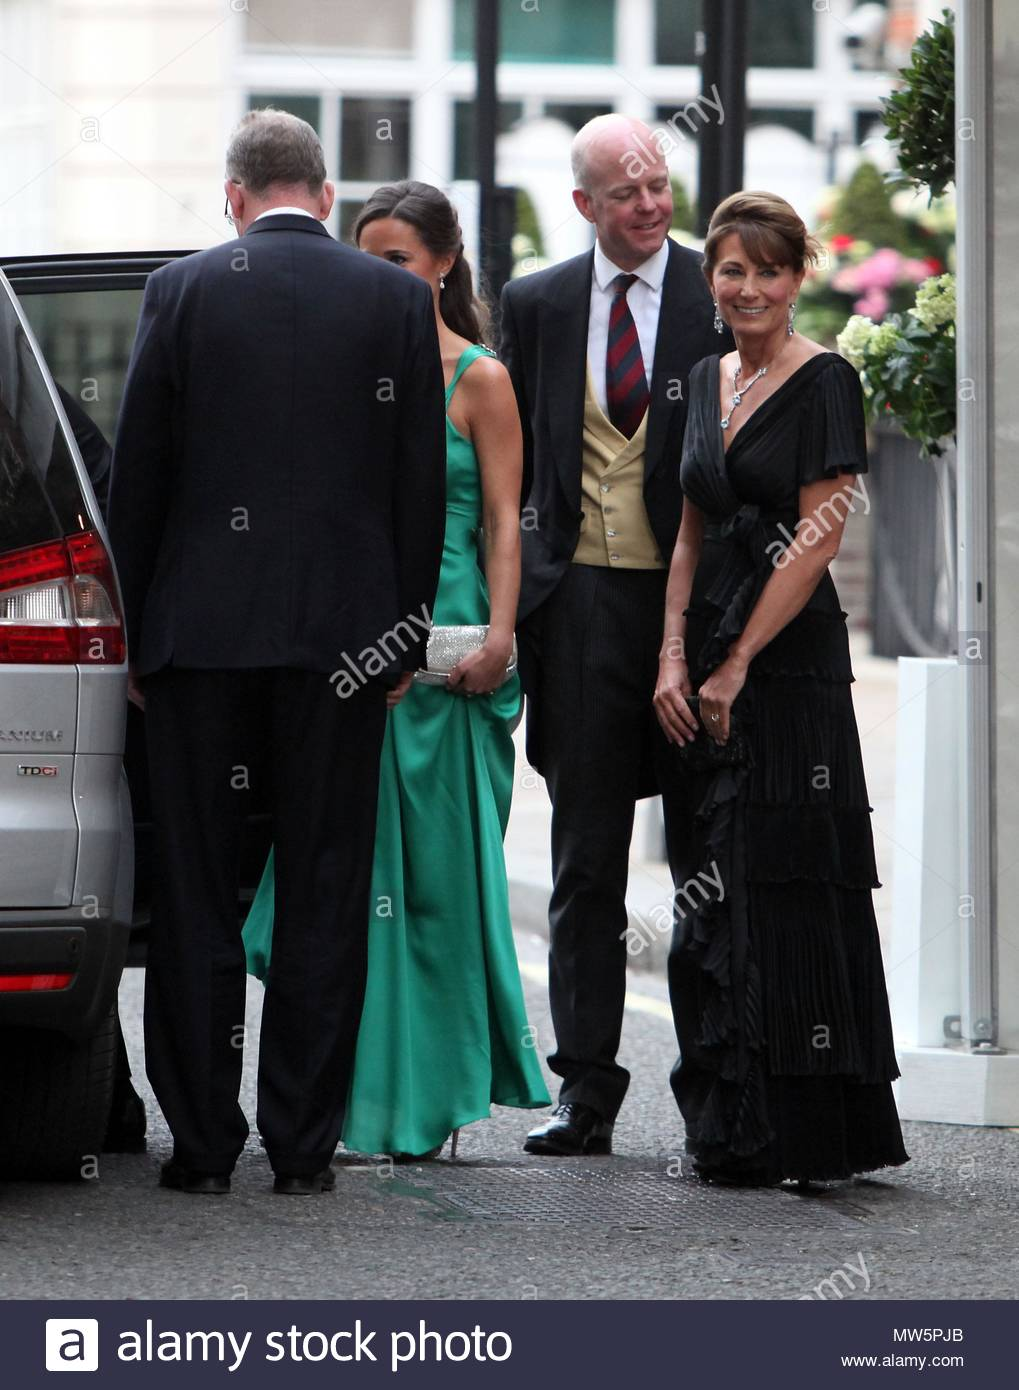 Michael Carole And Pippa Middleton En Route To A Post Wedding